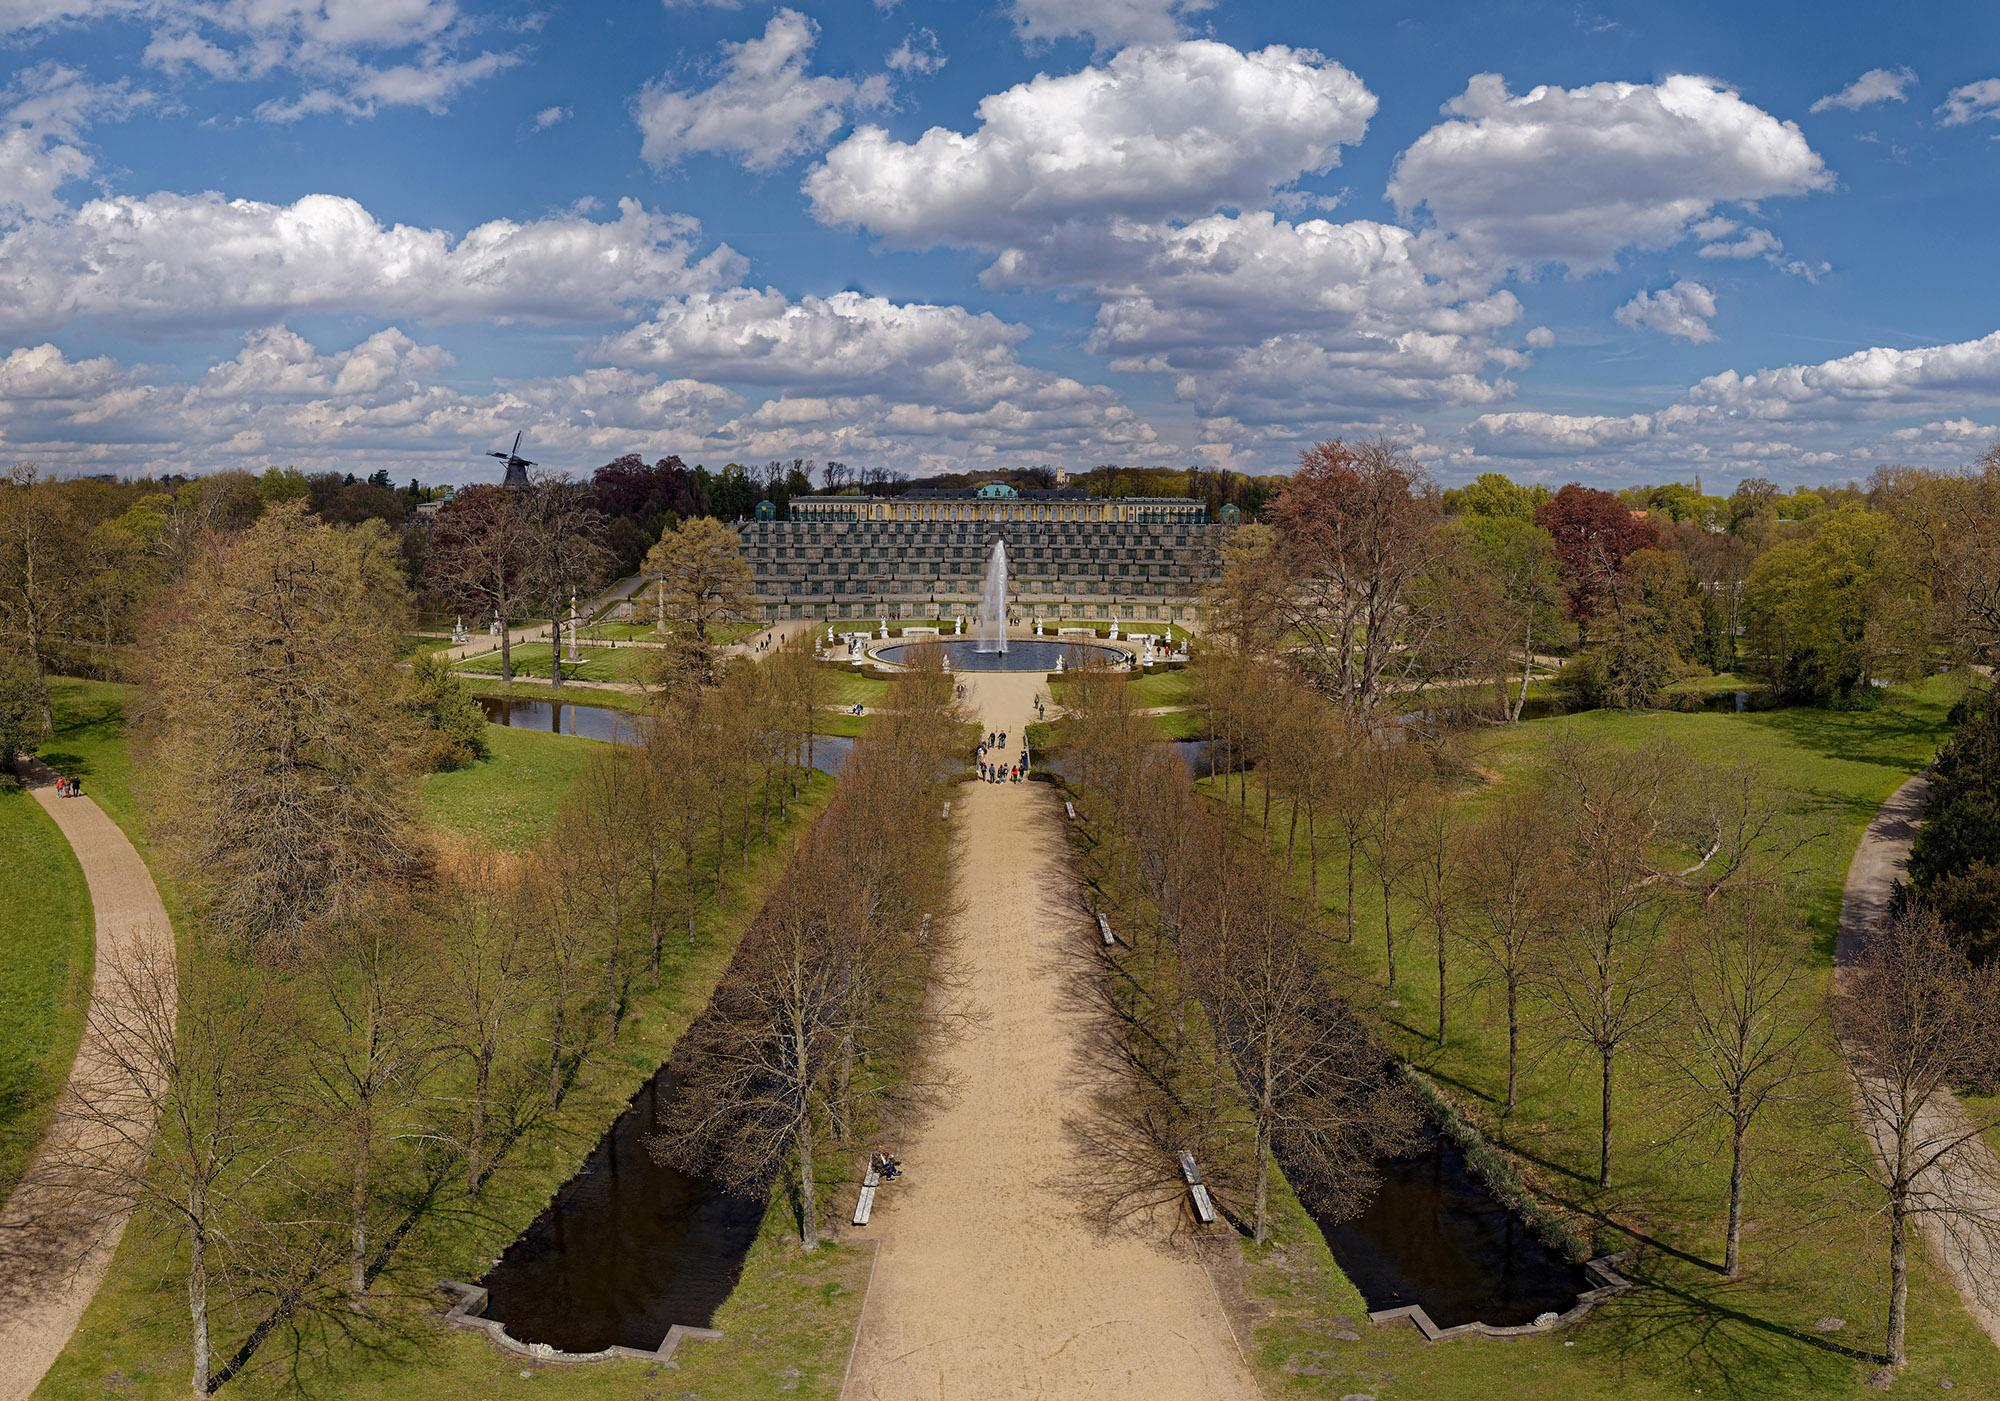 An aerial view of Sanssouci Palace and Park with the historic mill, large fountain, and famous wine terraces. – © André Stiebitz / SPSG